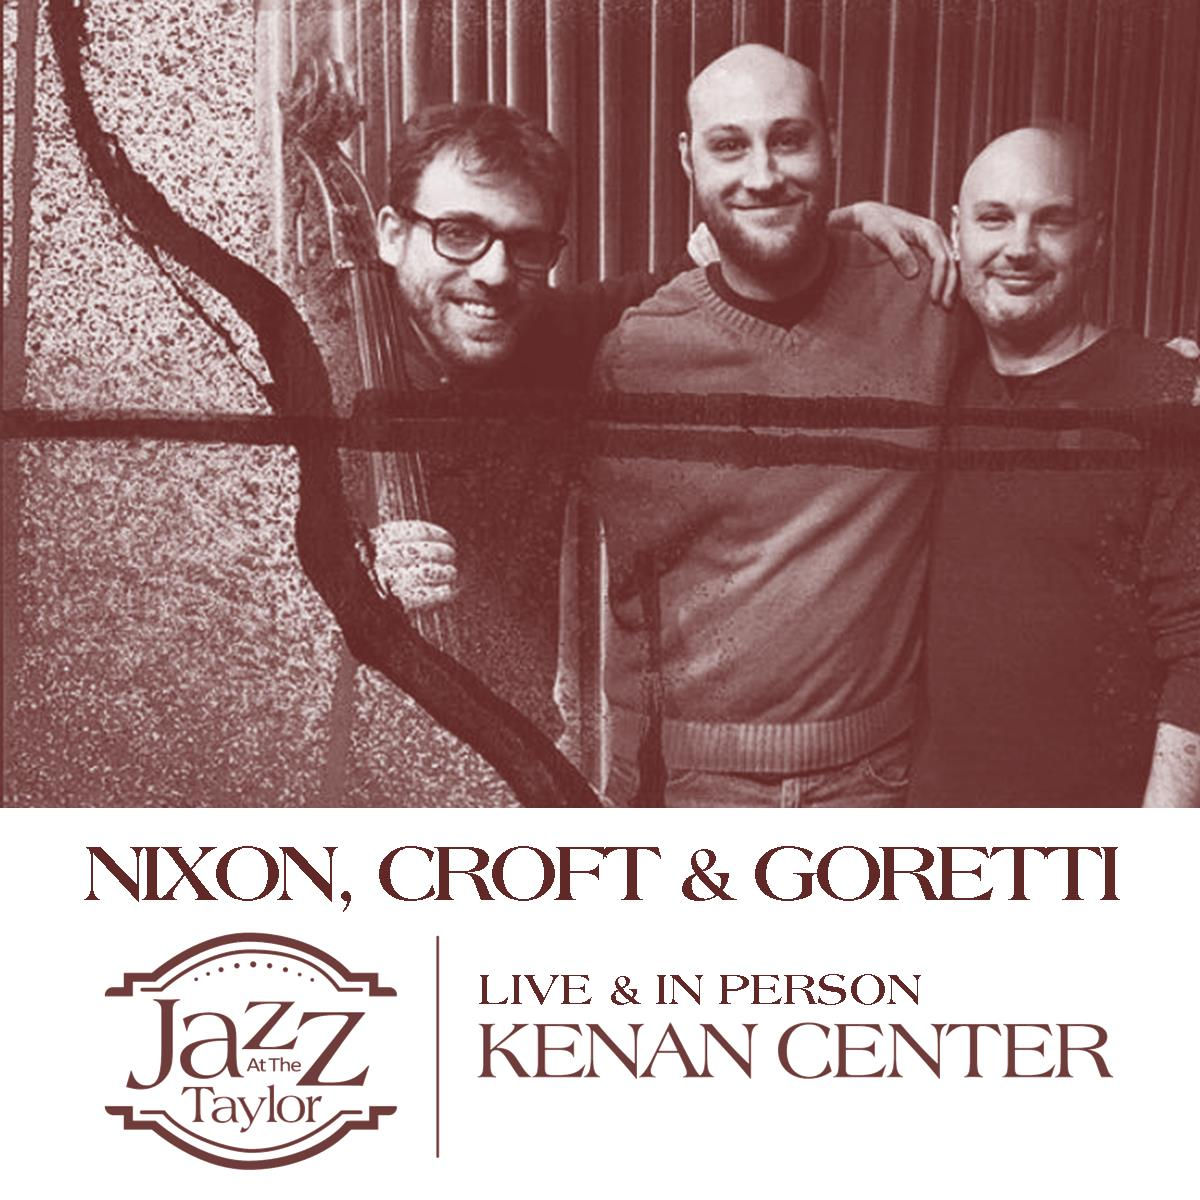 Jazz at the Taylor Presents Nixon, Croft & Goretti Celebrate the music of Chick Corea